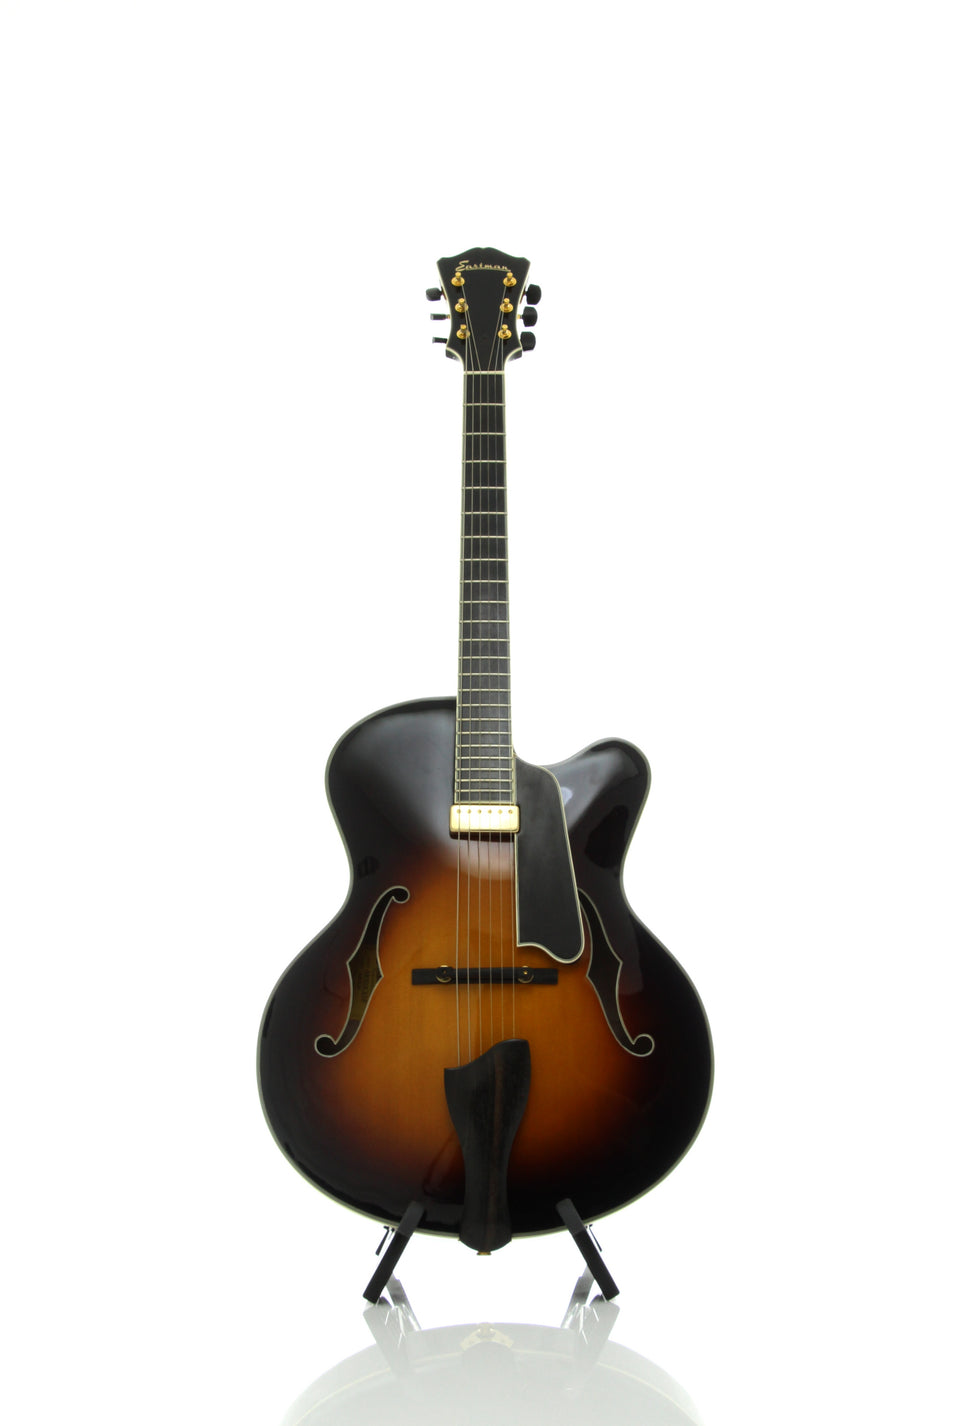 Eastman AR810CE-SB Archtop Electric Guitar - Ebony Fingerboard, Sunburst